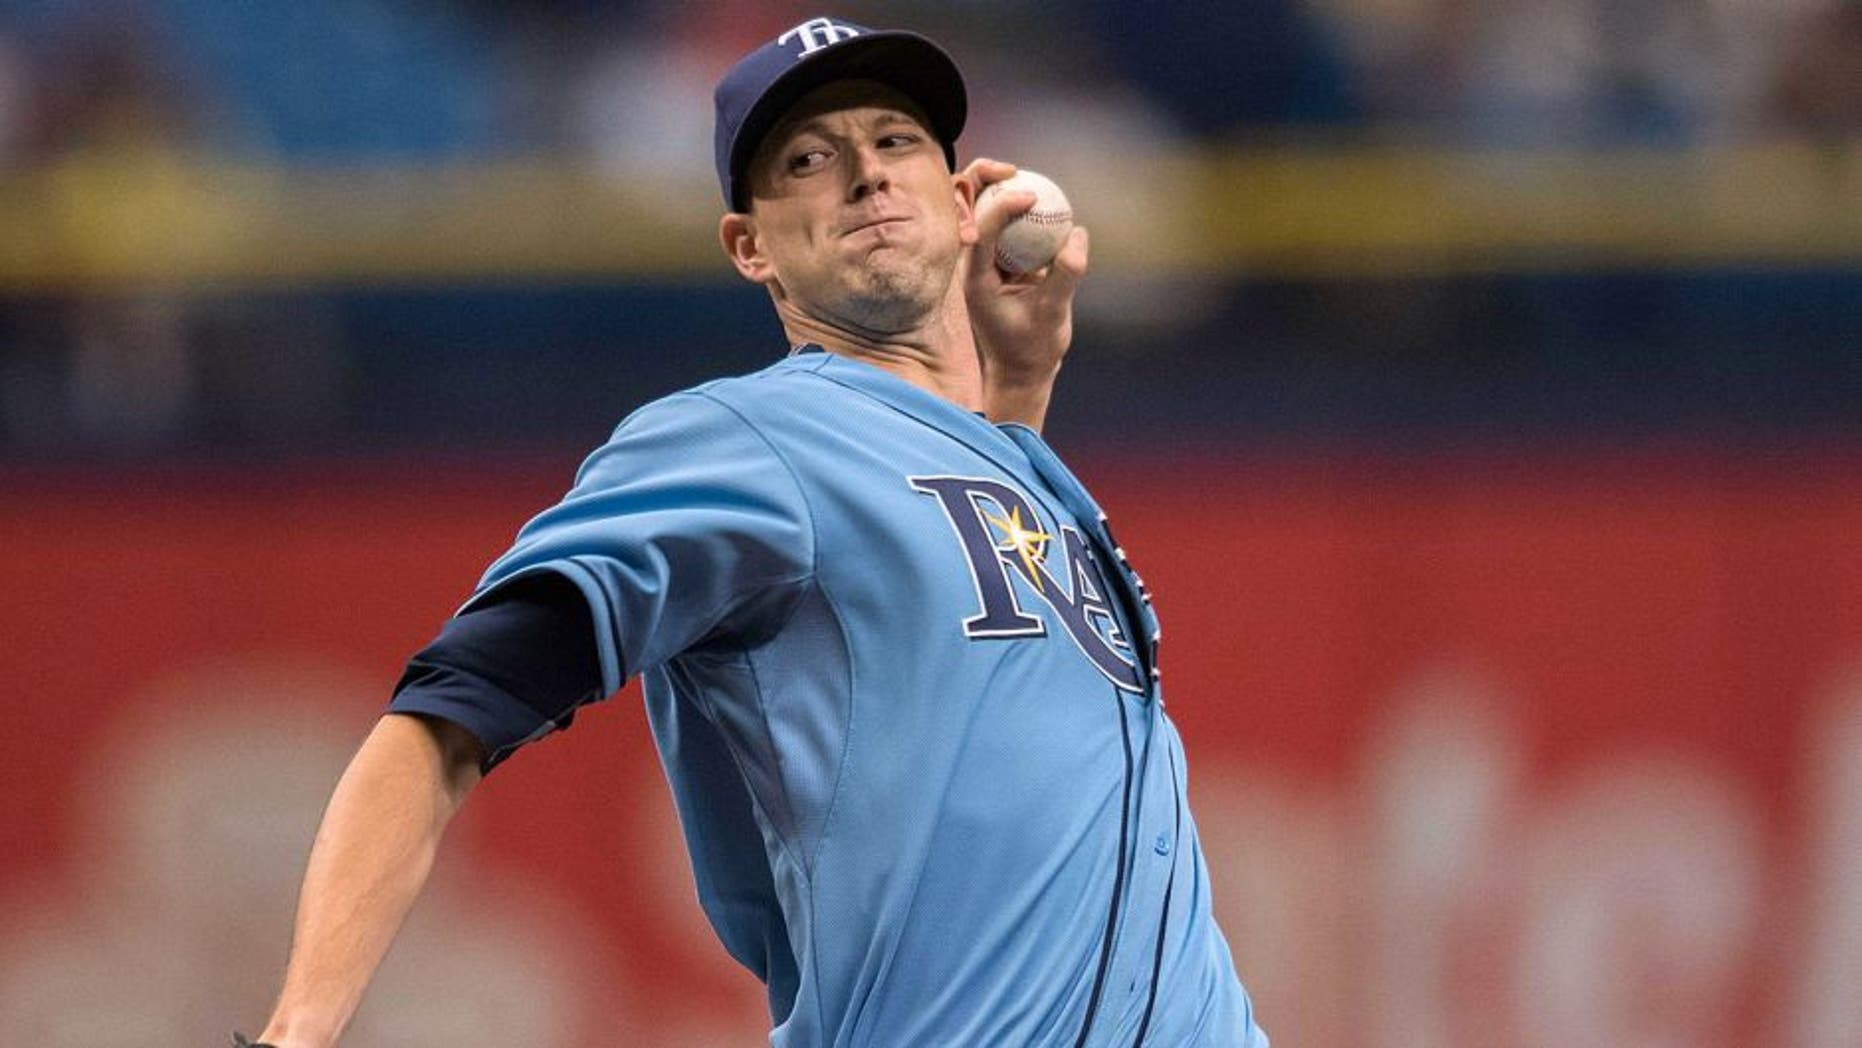 Sep 13, 2015; St. Petersburg, FL, USA; Tampa Bay Rays starting pitcher Drew Smyly (33) delivers a pitch in the first inning against the Boston Red Sox at Tropicana Field. Mandatory Credit: Jeff Griffith-USA TODAY Sports